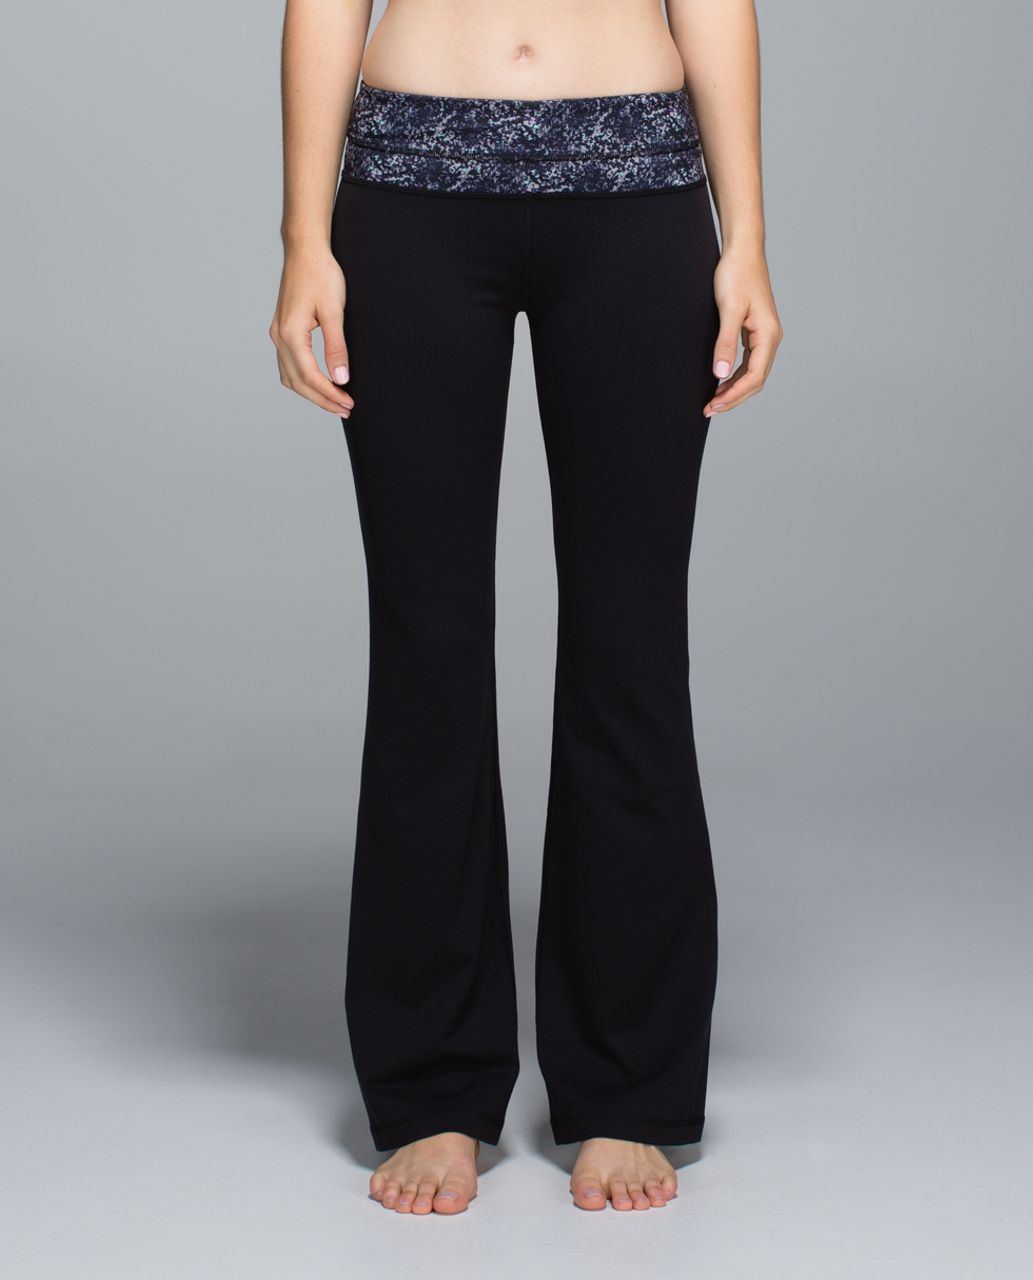 Lululemon Groove Pant *Full-On Luon (Regular) - Black / Rocky Road Sand Dune Toothpaste